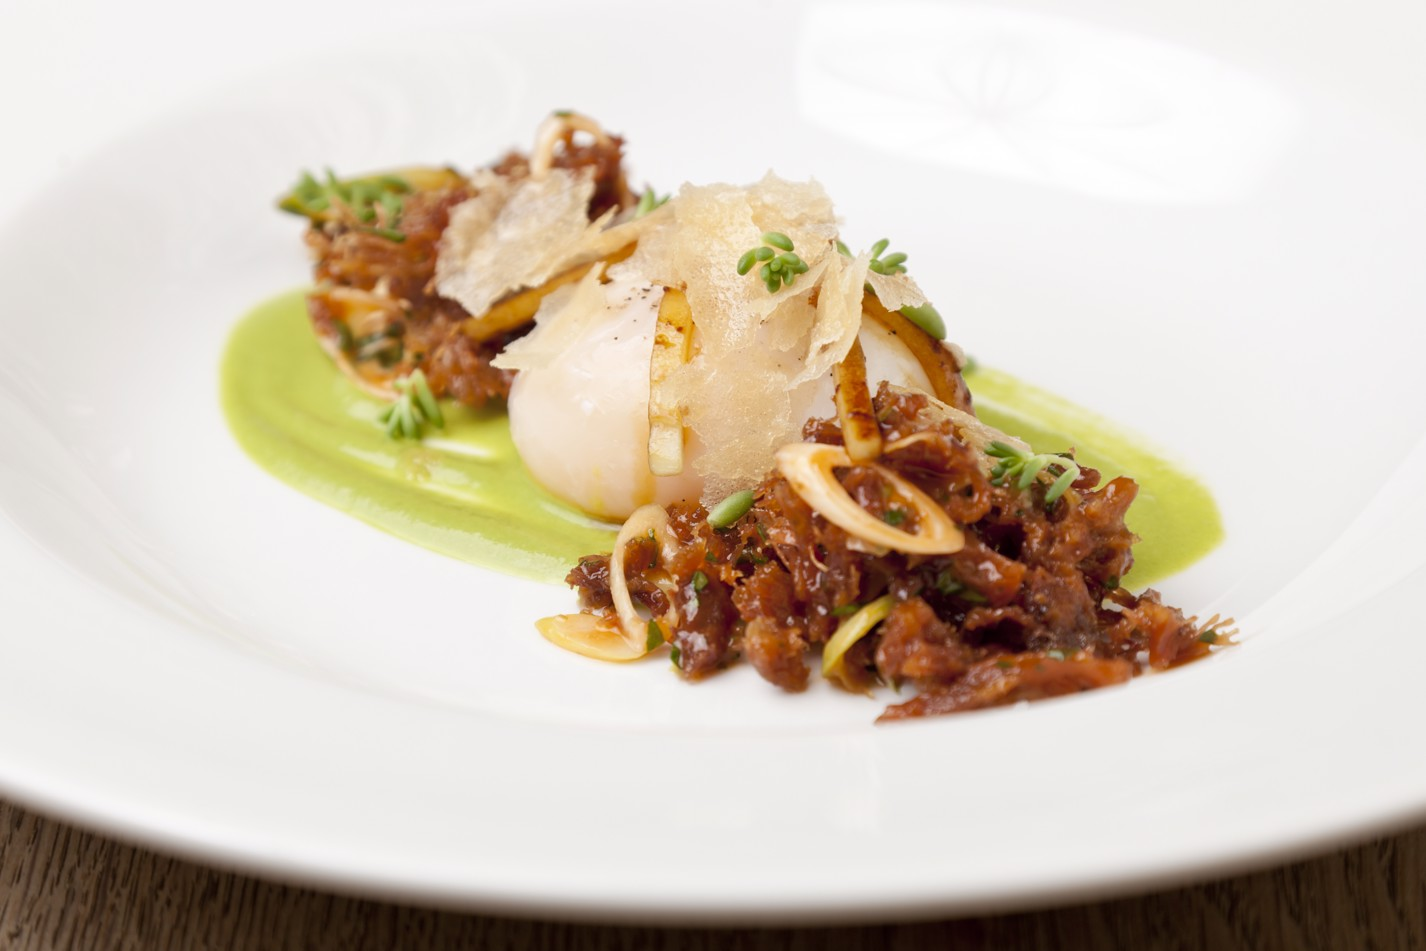 Slow-cooked duck egg with Peking-style leg meat, spring onion purée, cucumber, pancake crumb